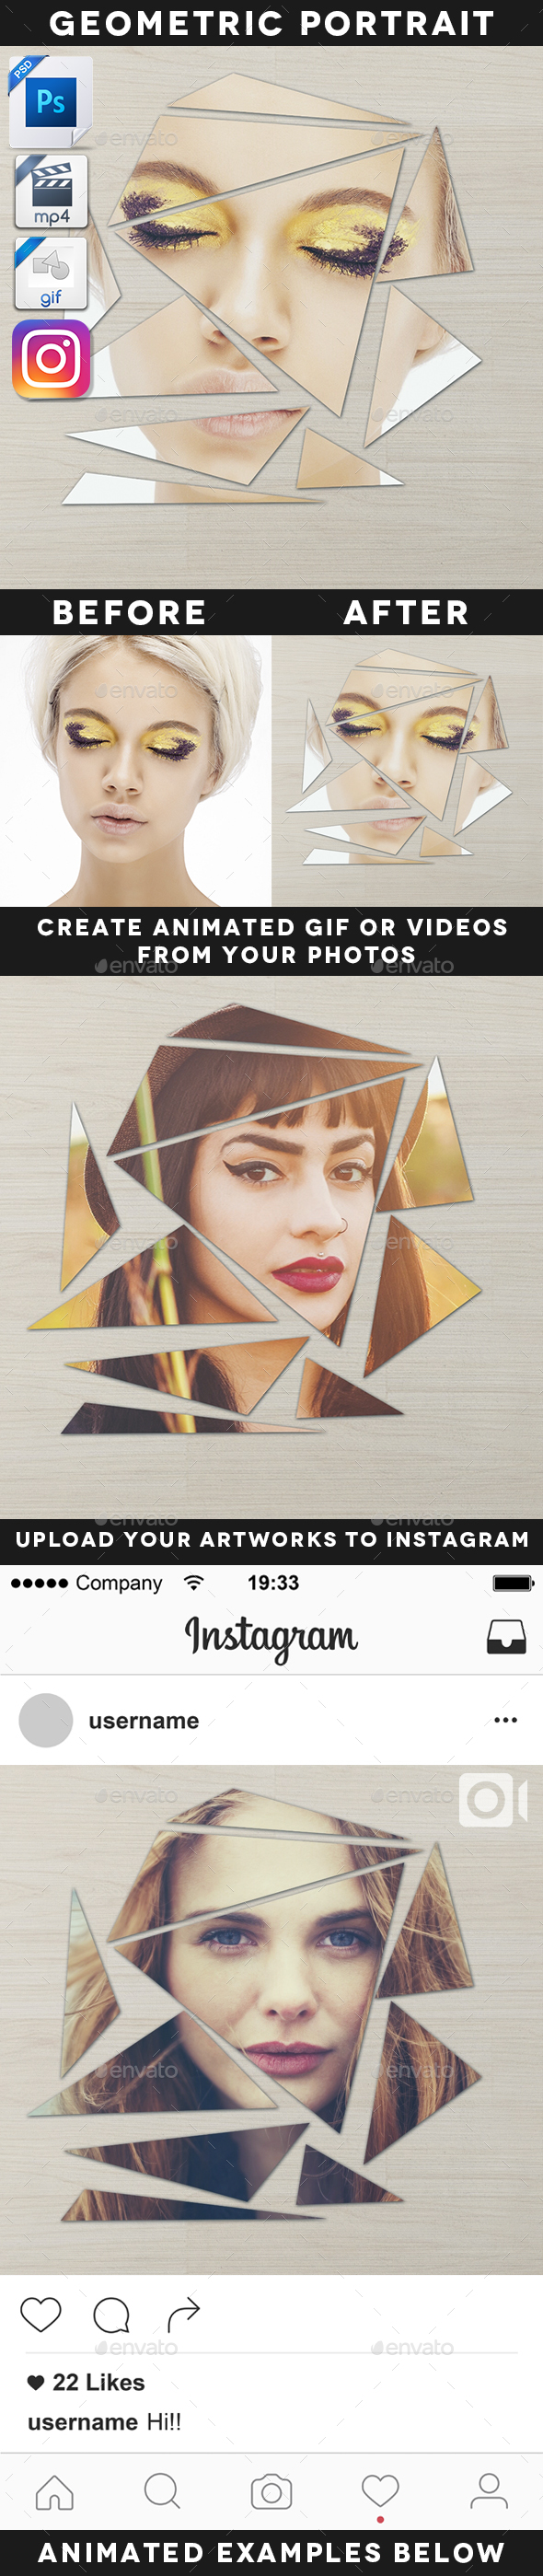 Animated Broken Geometric Portrait Template - Artistic Photo Templates